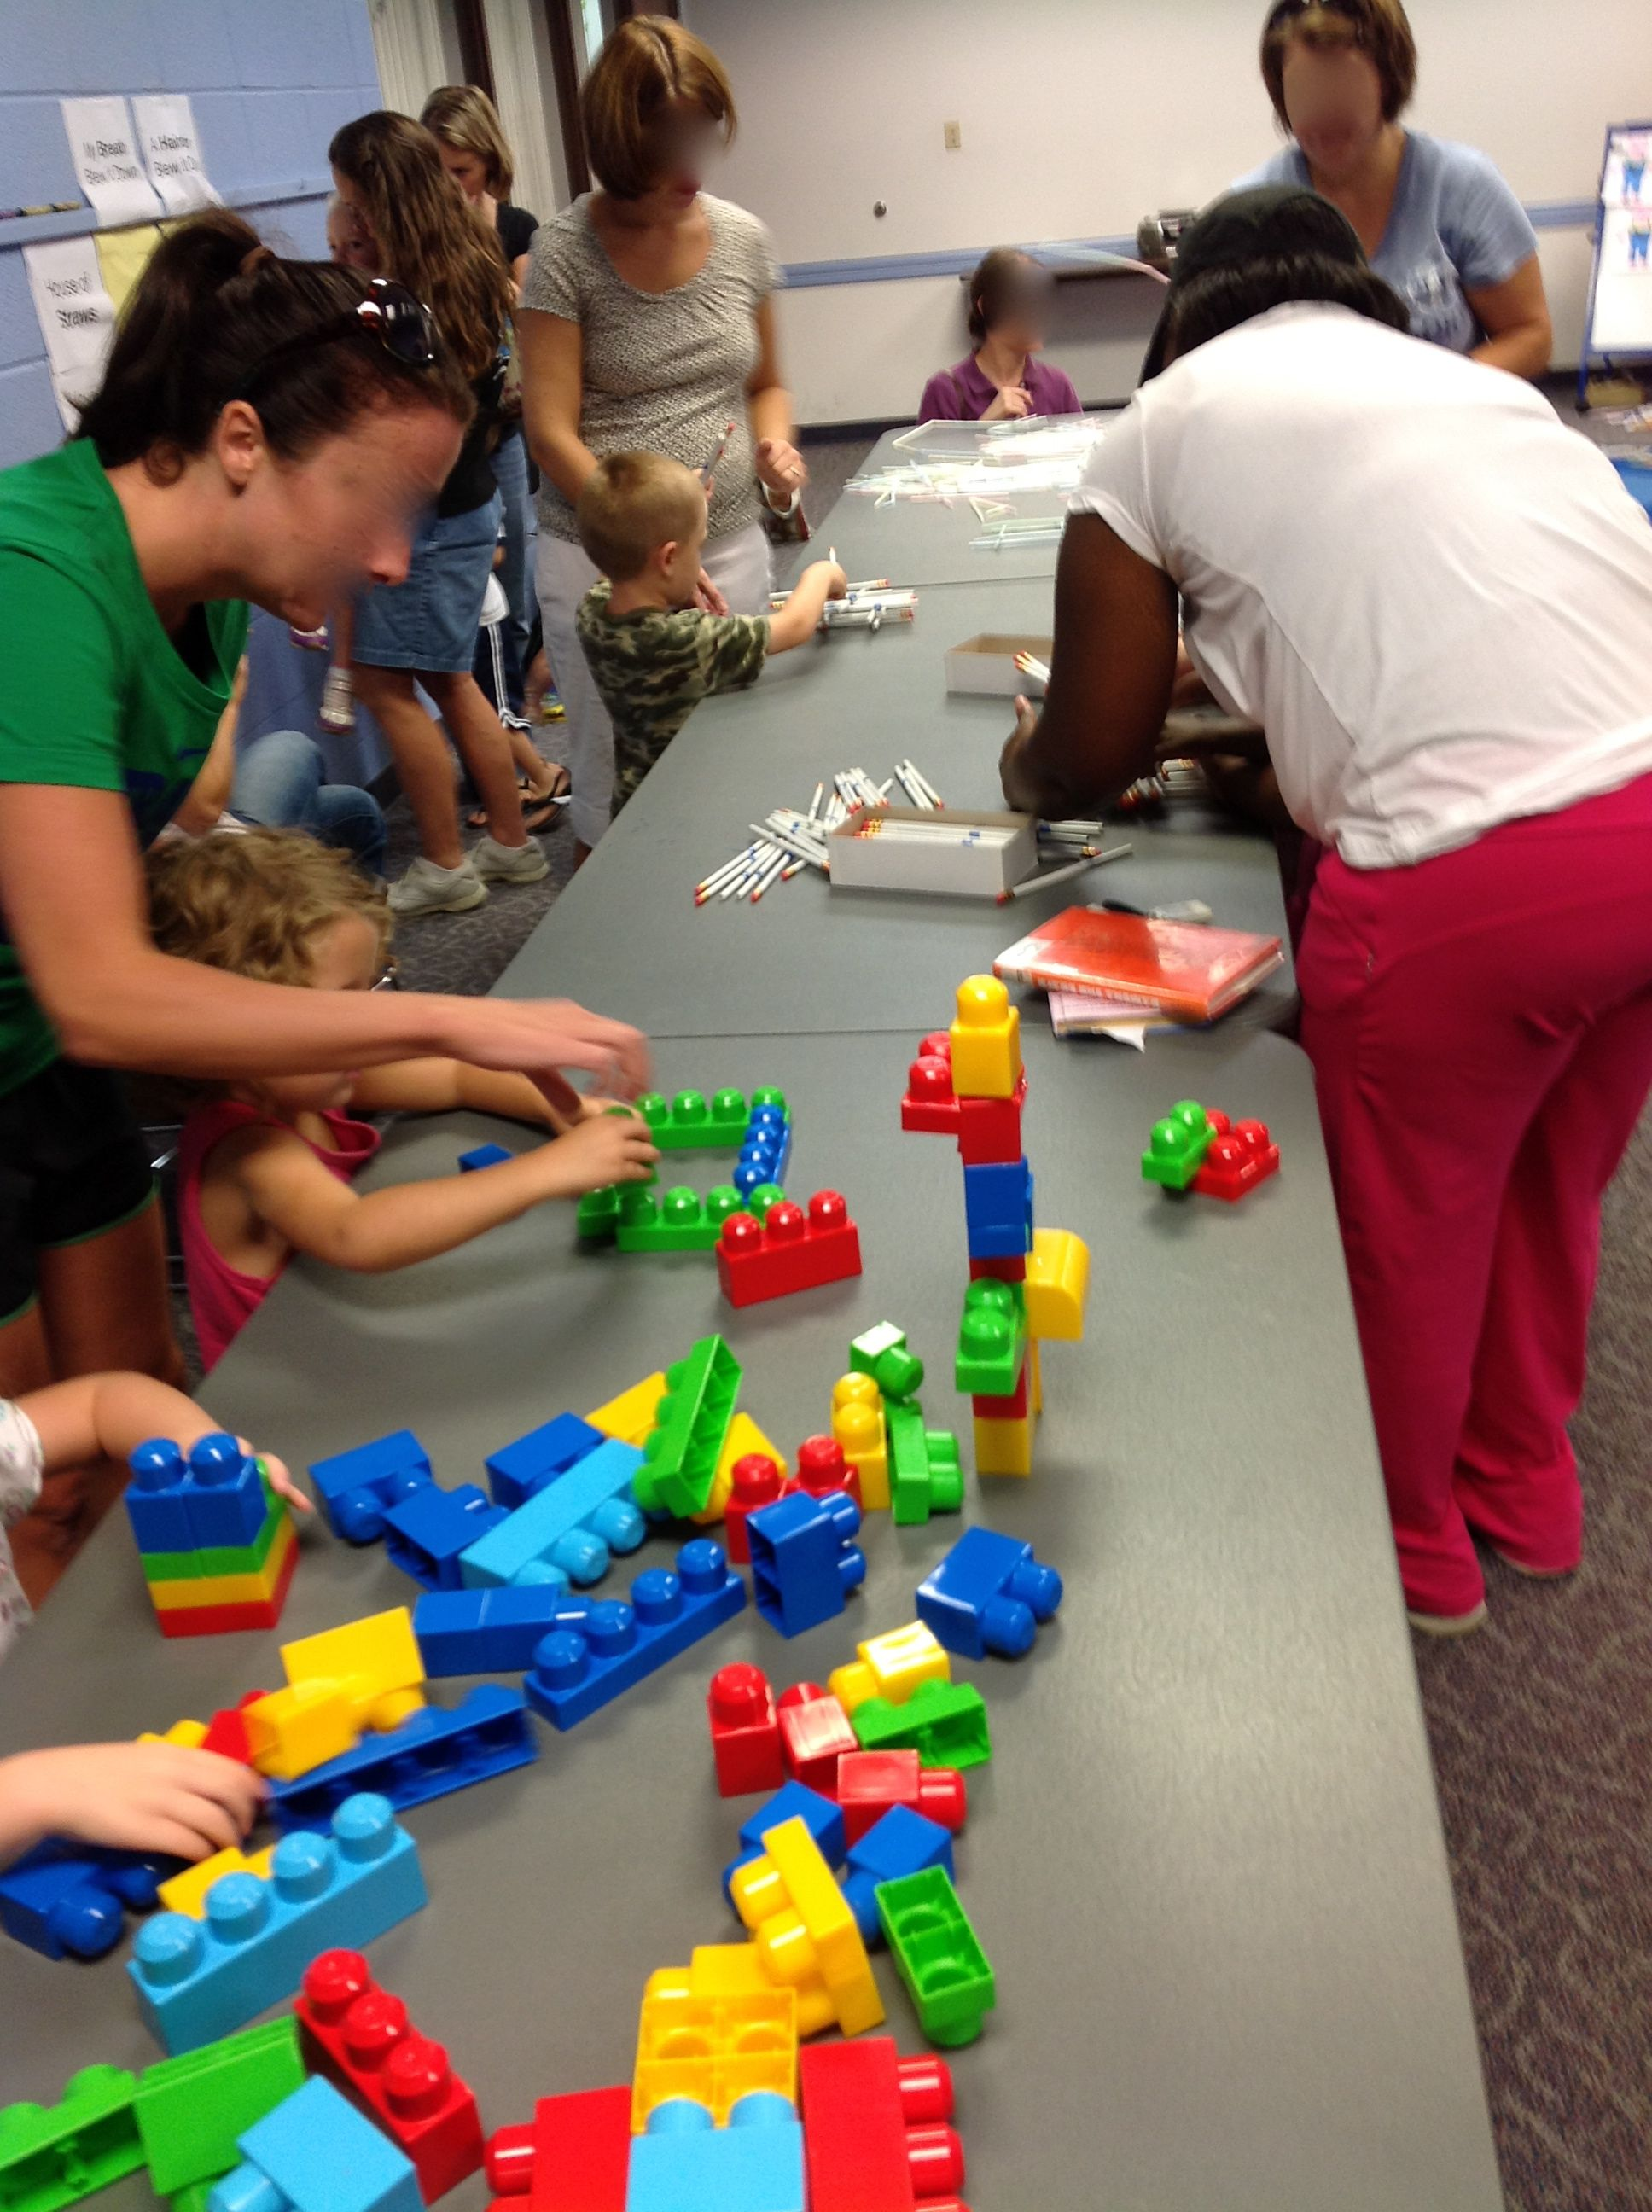 The Three Little Pigs Amp The Preschool Science Kids Get To Experiment With Building Materials